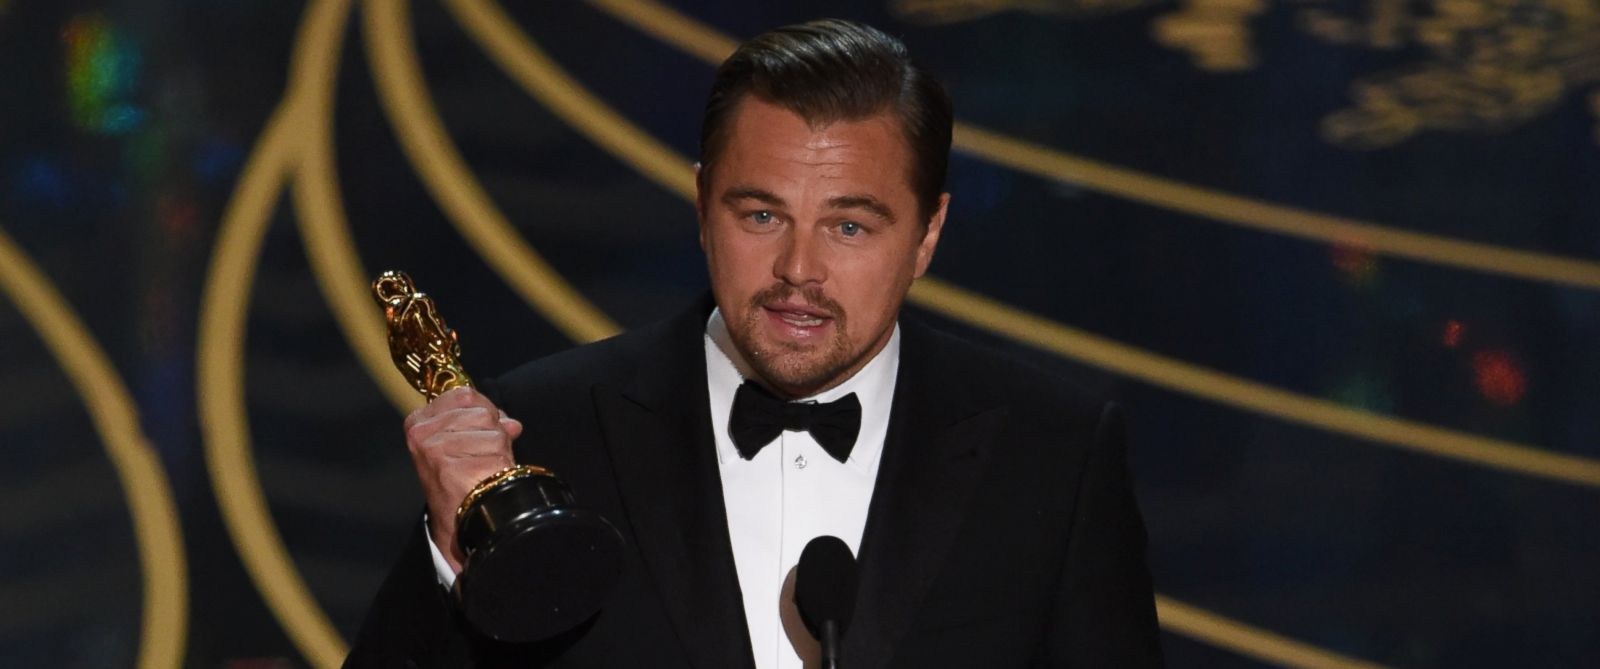 Leonardo Di Caprio after winning the Oscar. Image Courtesy:ABCNews